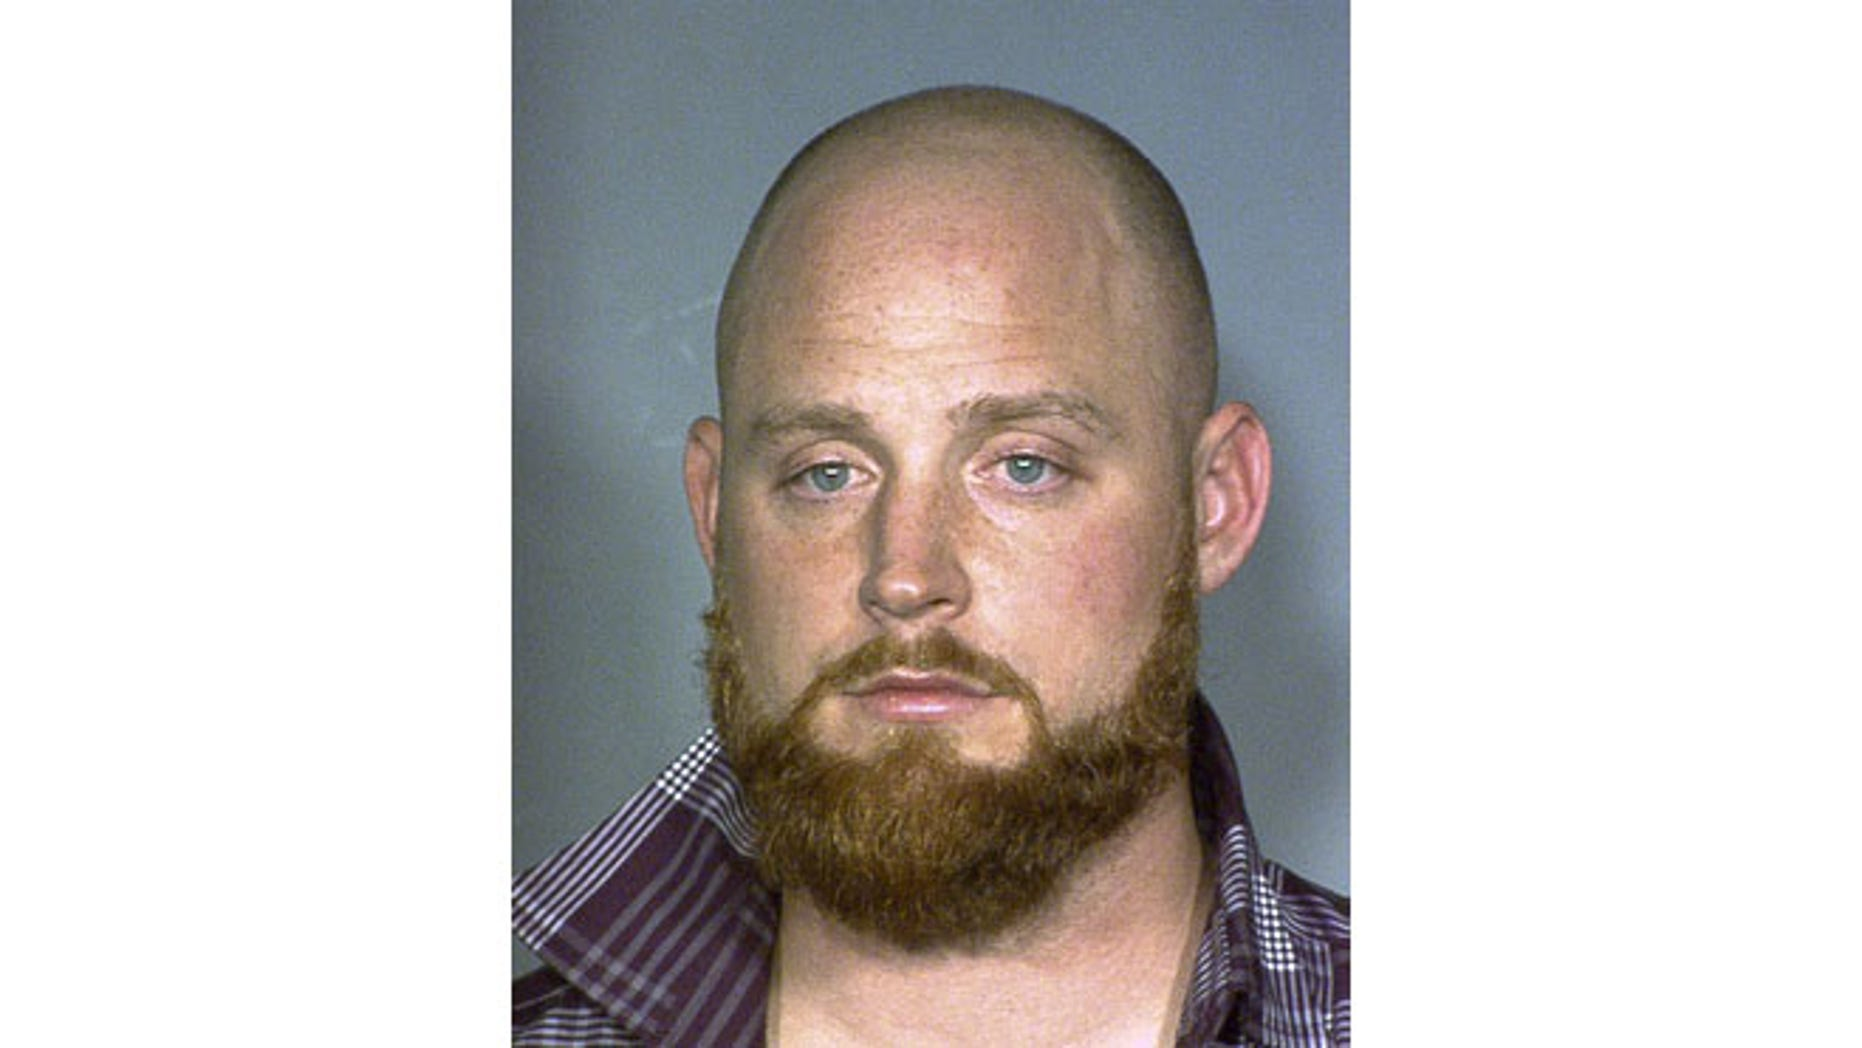 July 11, 2013: This photo released by the Las Vegas Metropolitan Police Department shows San Francisco Giants pitcher, Chad Gaudin, 30, who was arrested Jan. 27,2013, and charged with lewdness. Police say Gaudin was drunk when he approached a 23-year-old woman on a gurney at Desert Springs Hospital, told her she was gorgeous and touched her face and breast earlier this year.